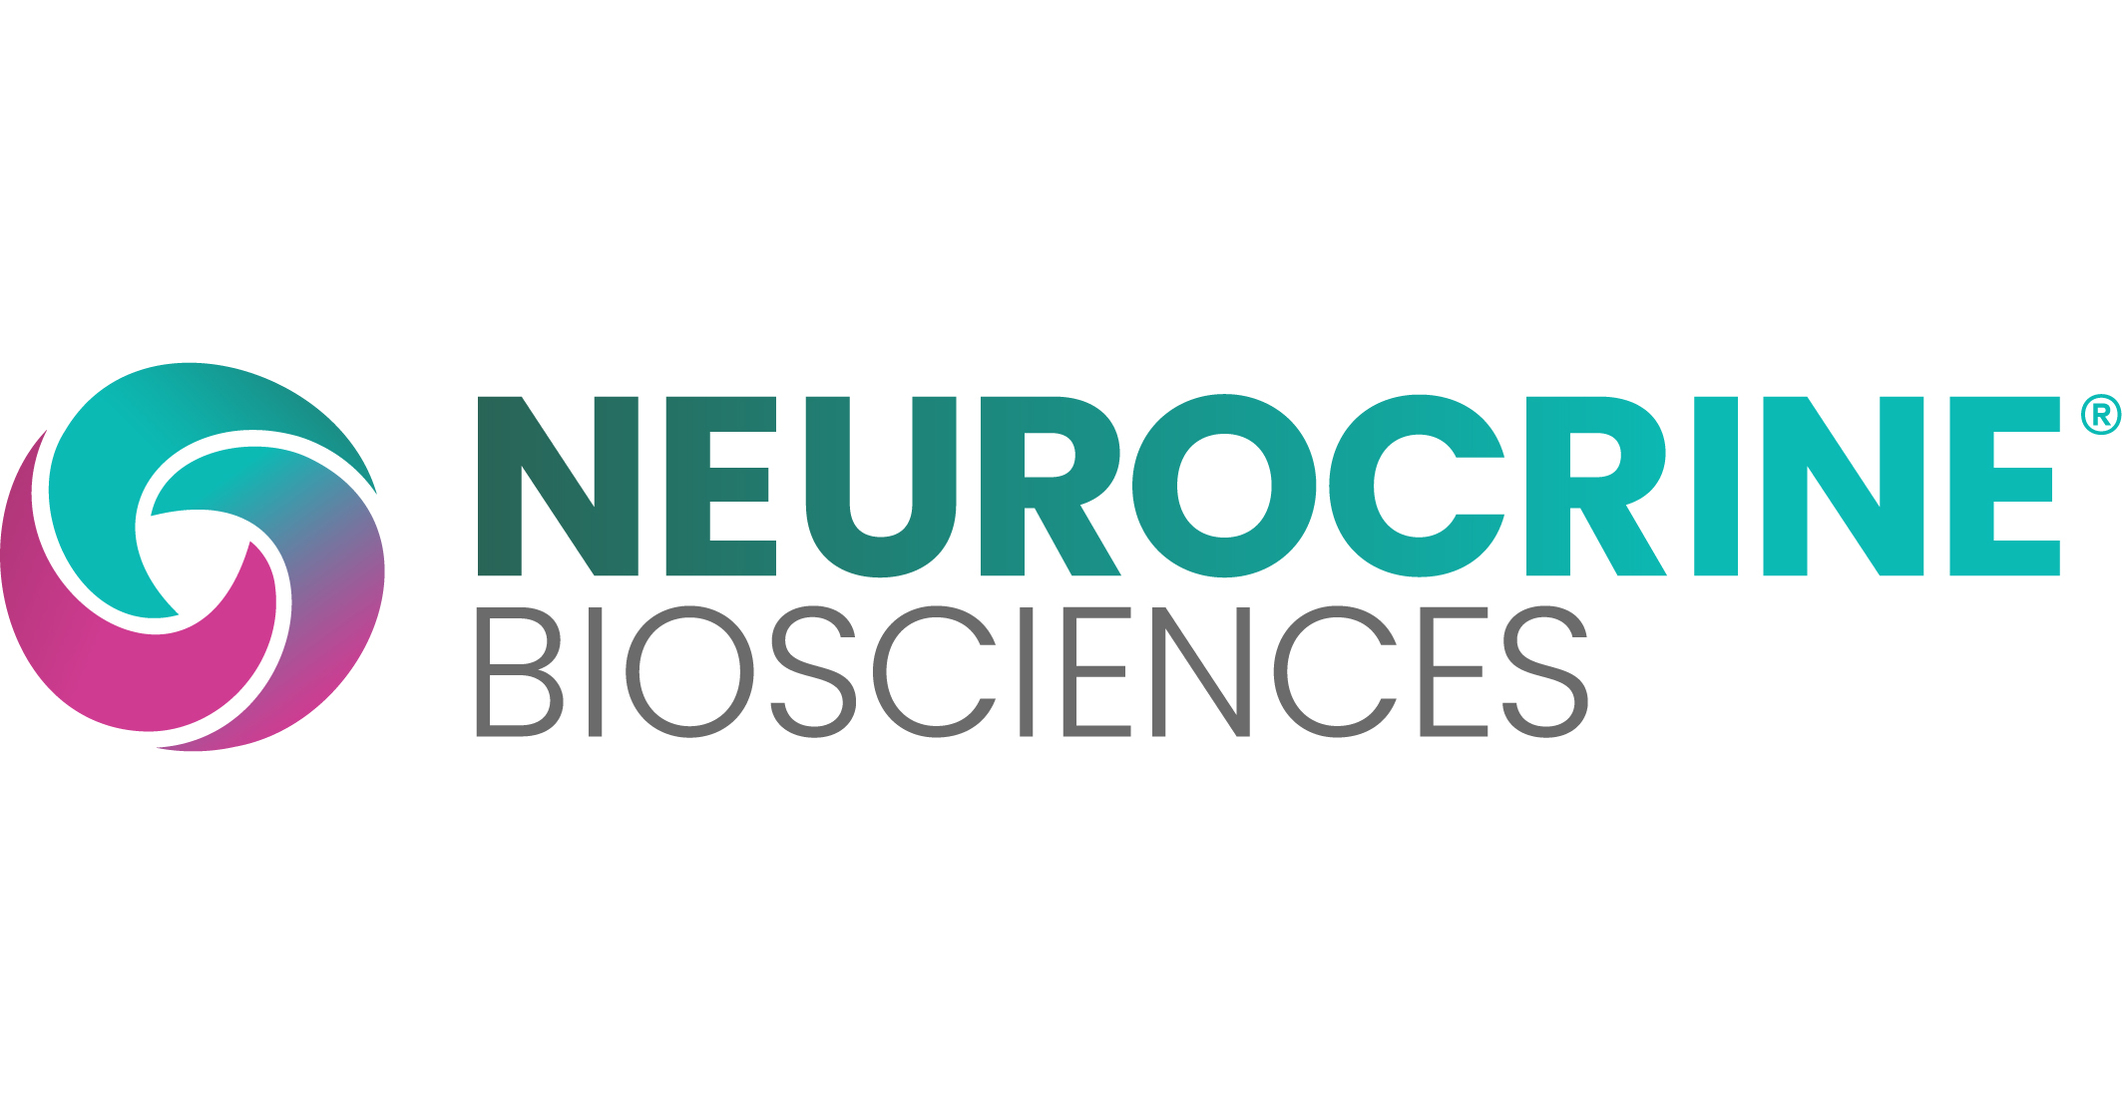 Neurocrine Biosciences Honors Mental Health Month and Raises